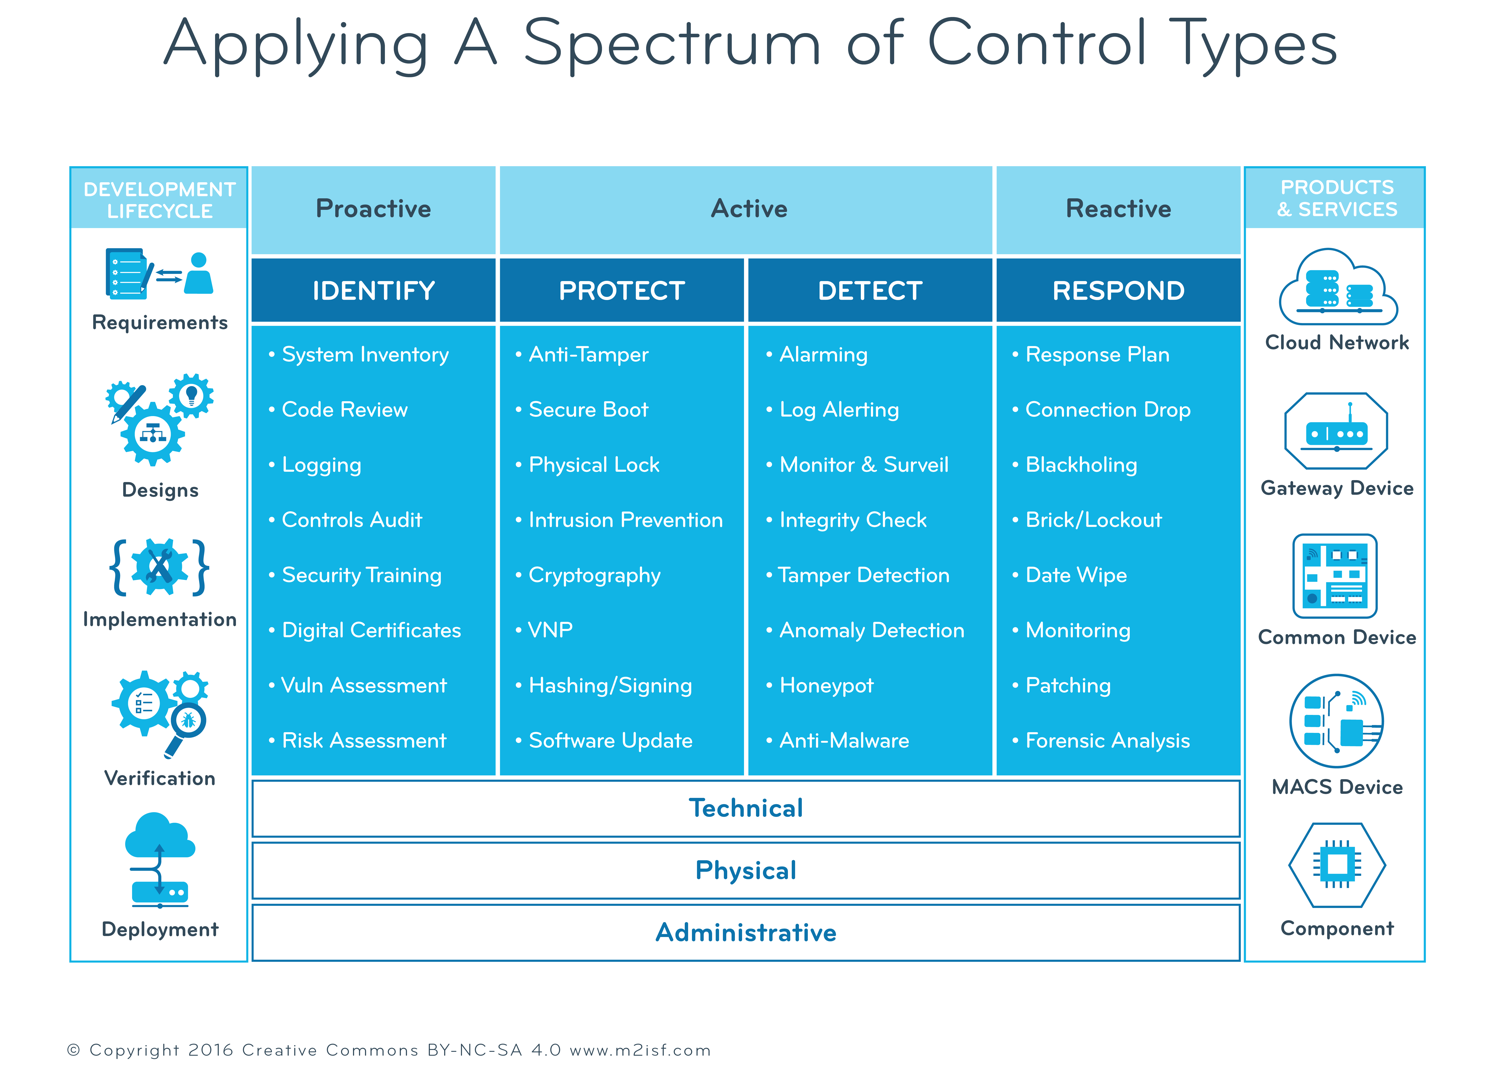 m2isf_A_Spectrum_of_Control_Types-L.png